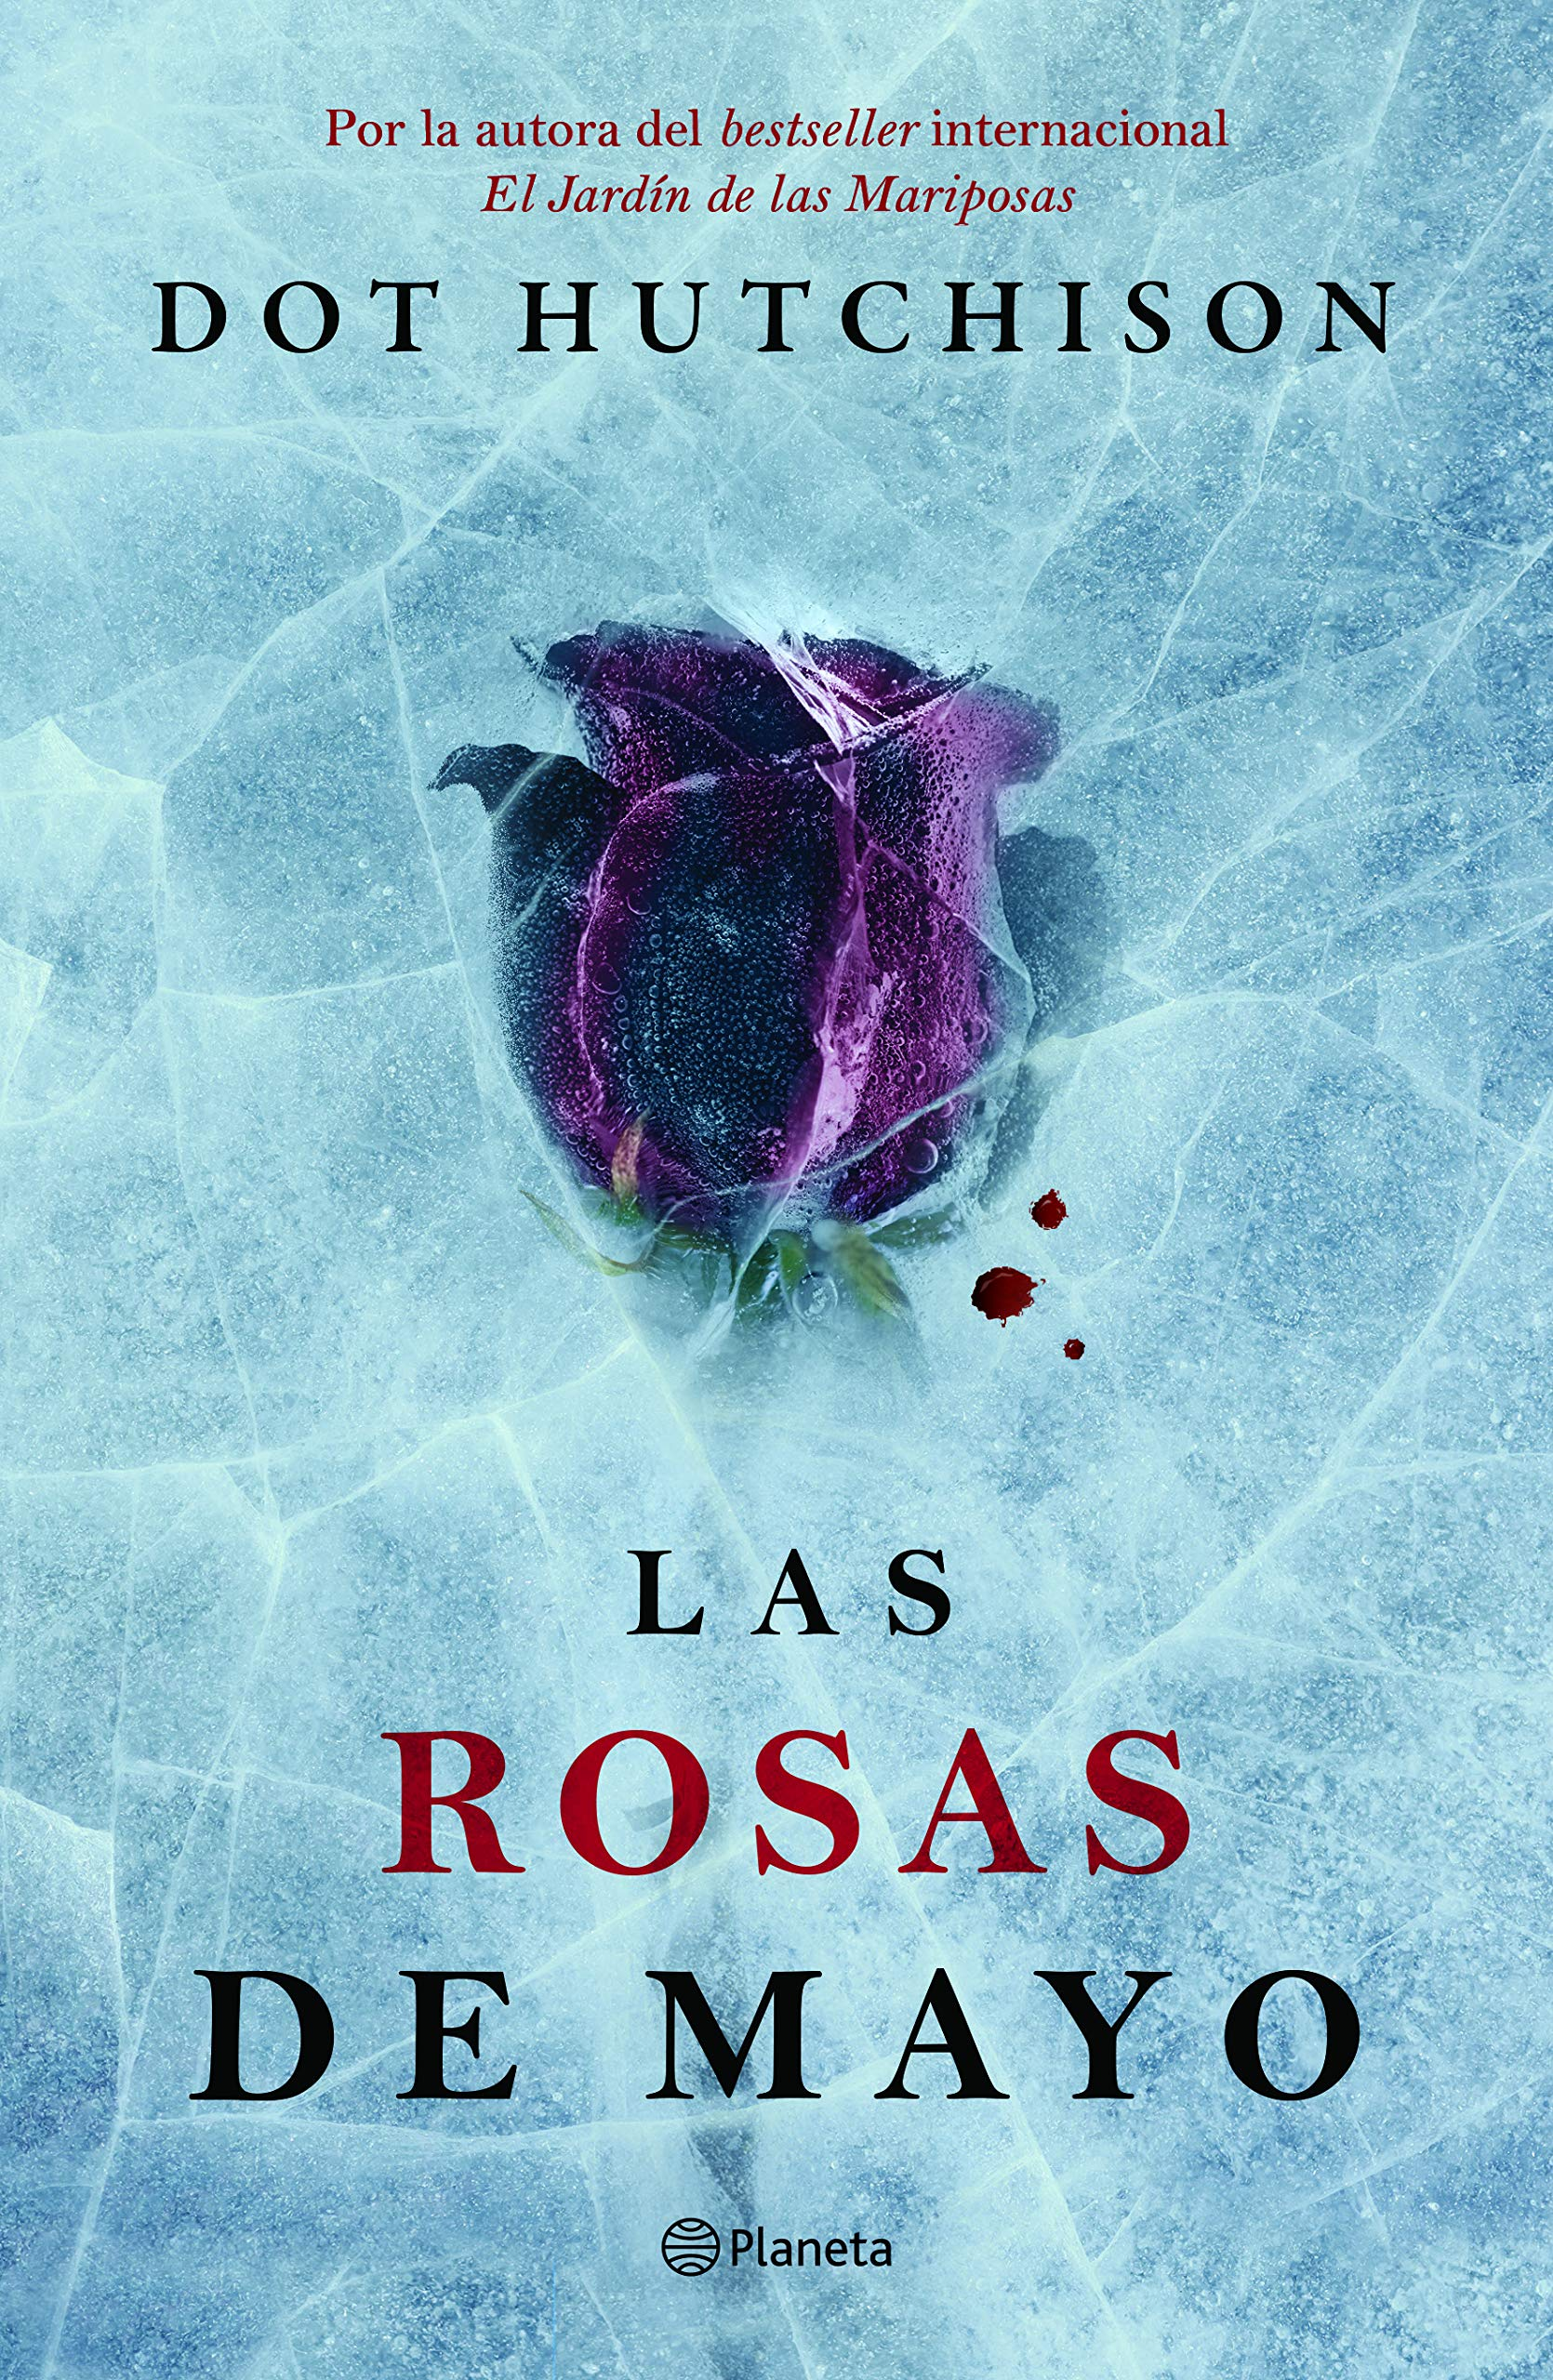 Las Rosas de Mayo (Spanish Edition): Dot Hutchison: 9786070756825: Amazon.com: Books